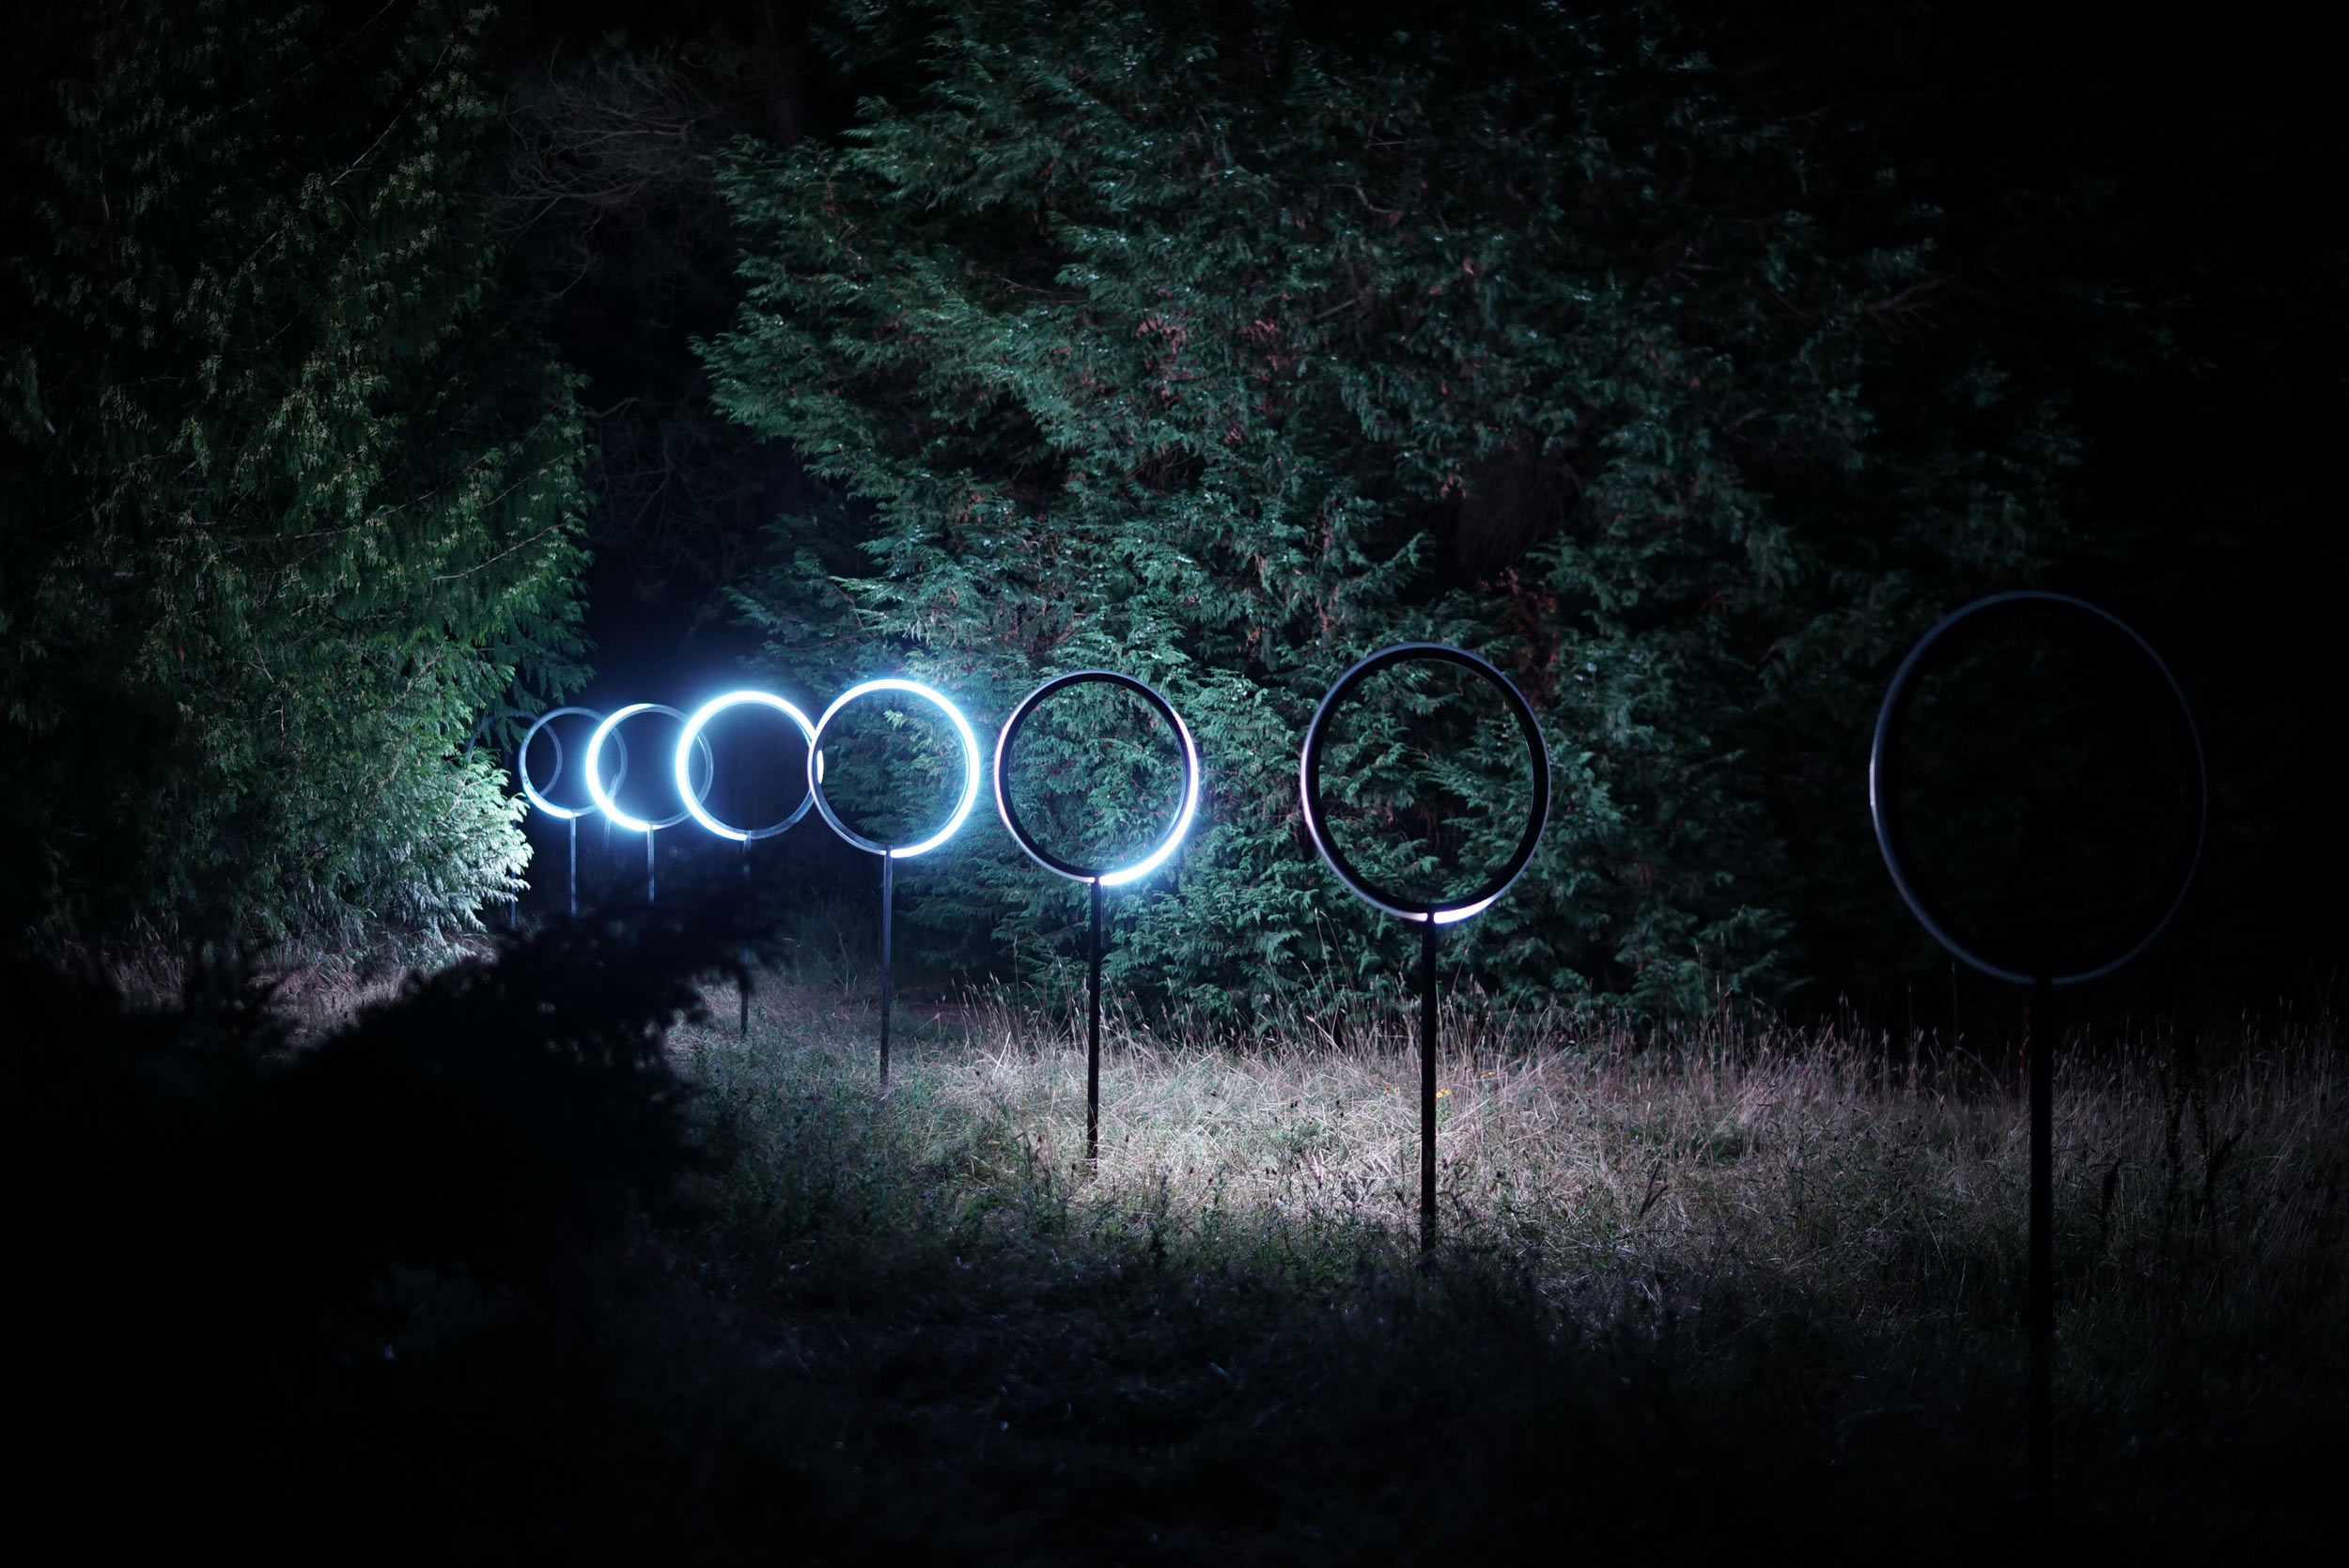 light sculpture